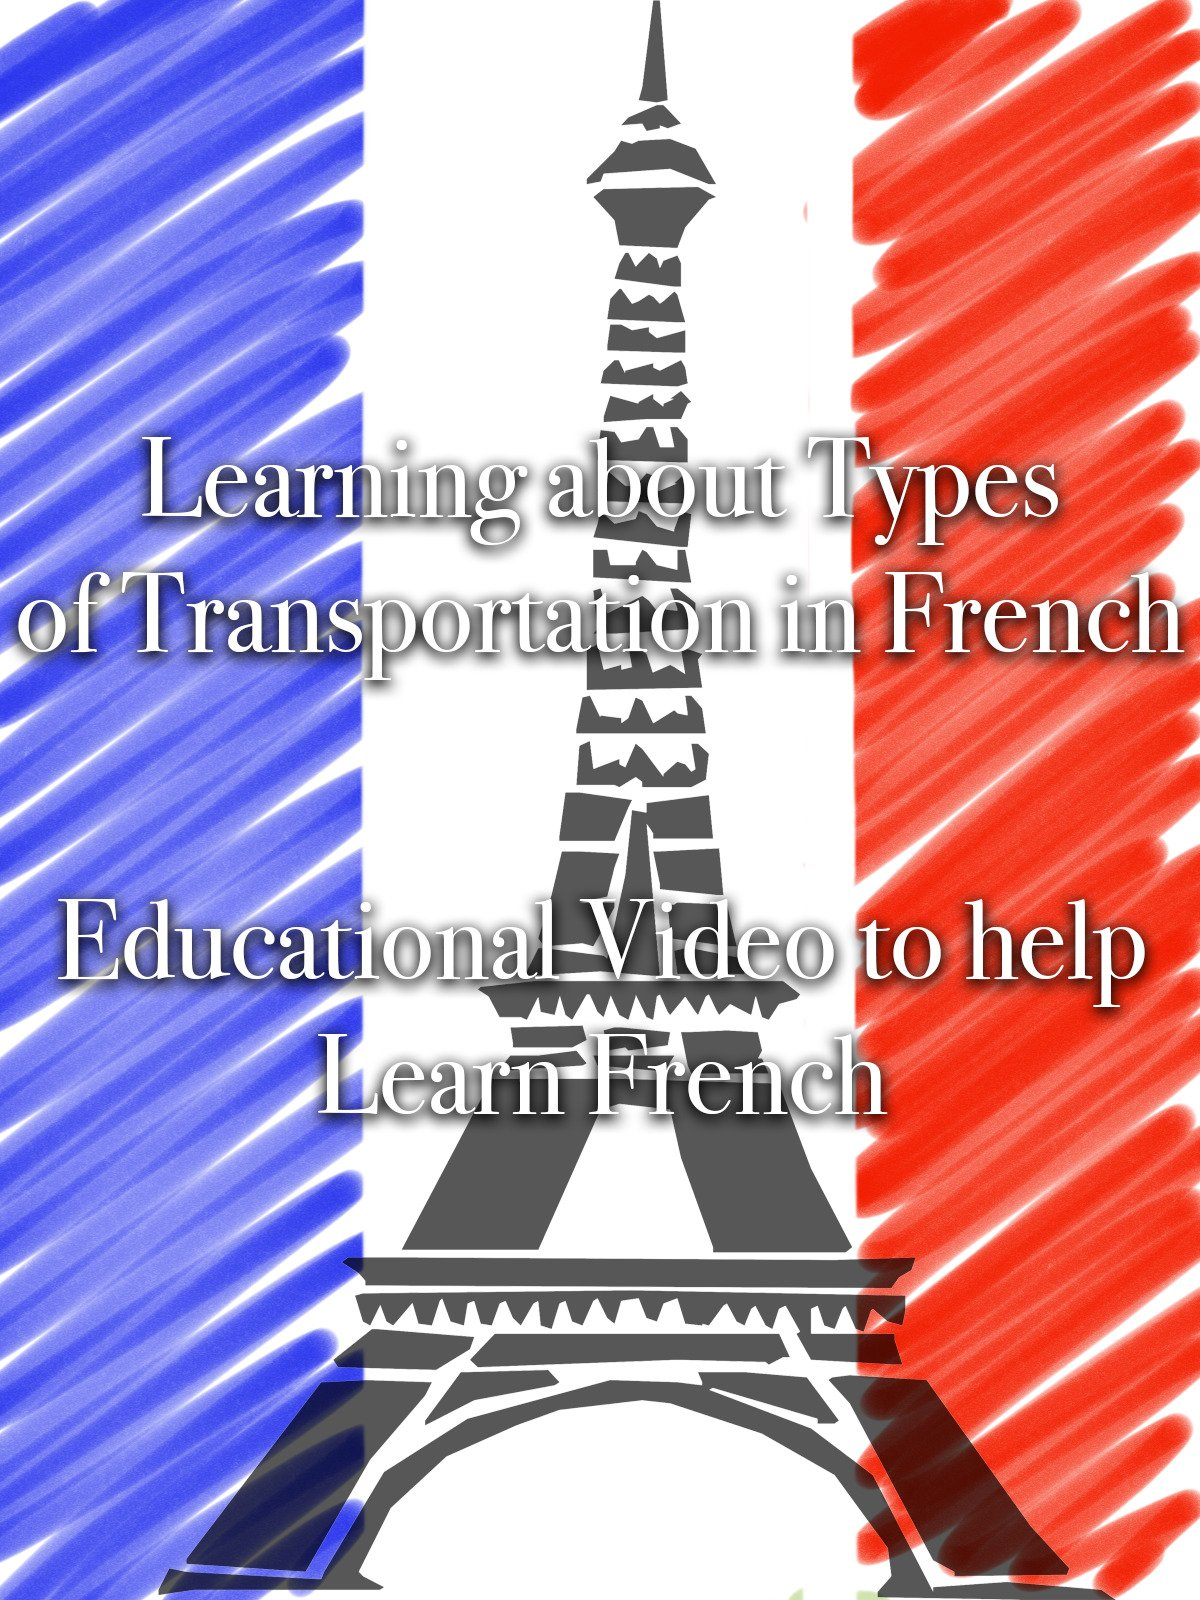 Leaning about Types of Transportation in French Educational Video to help Learn French